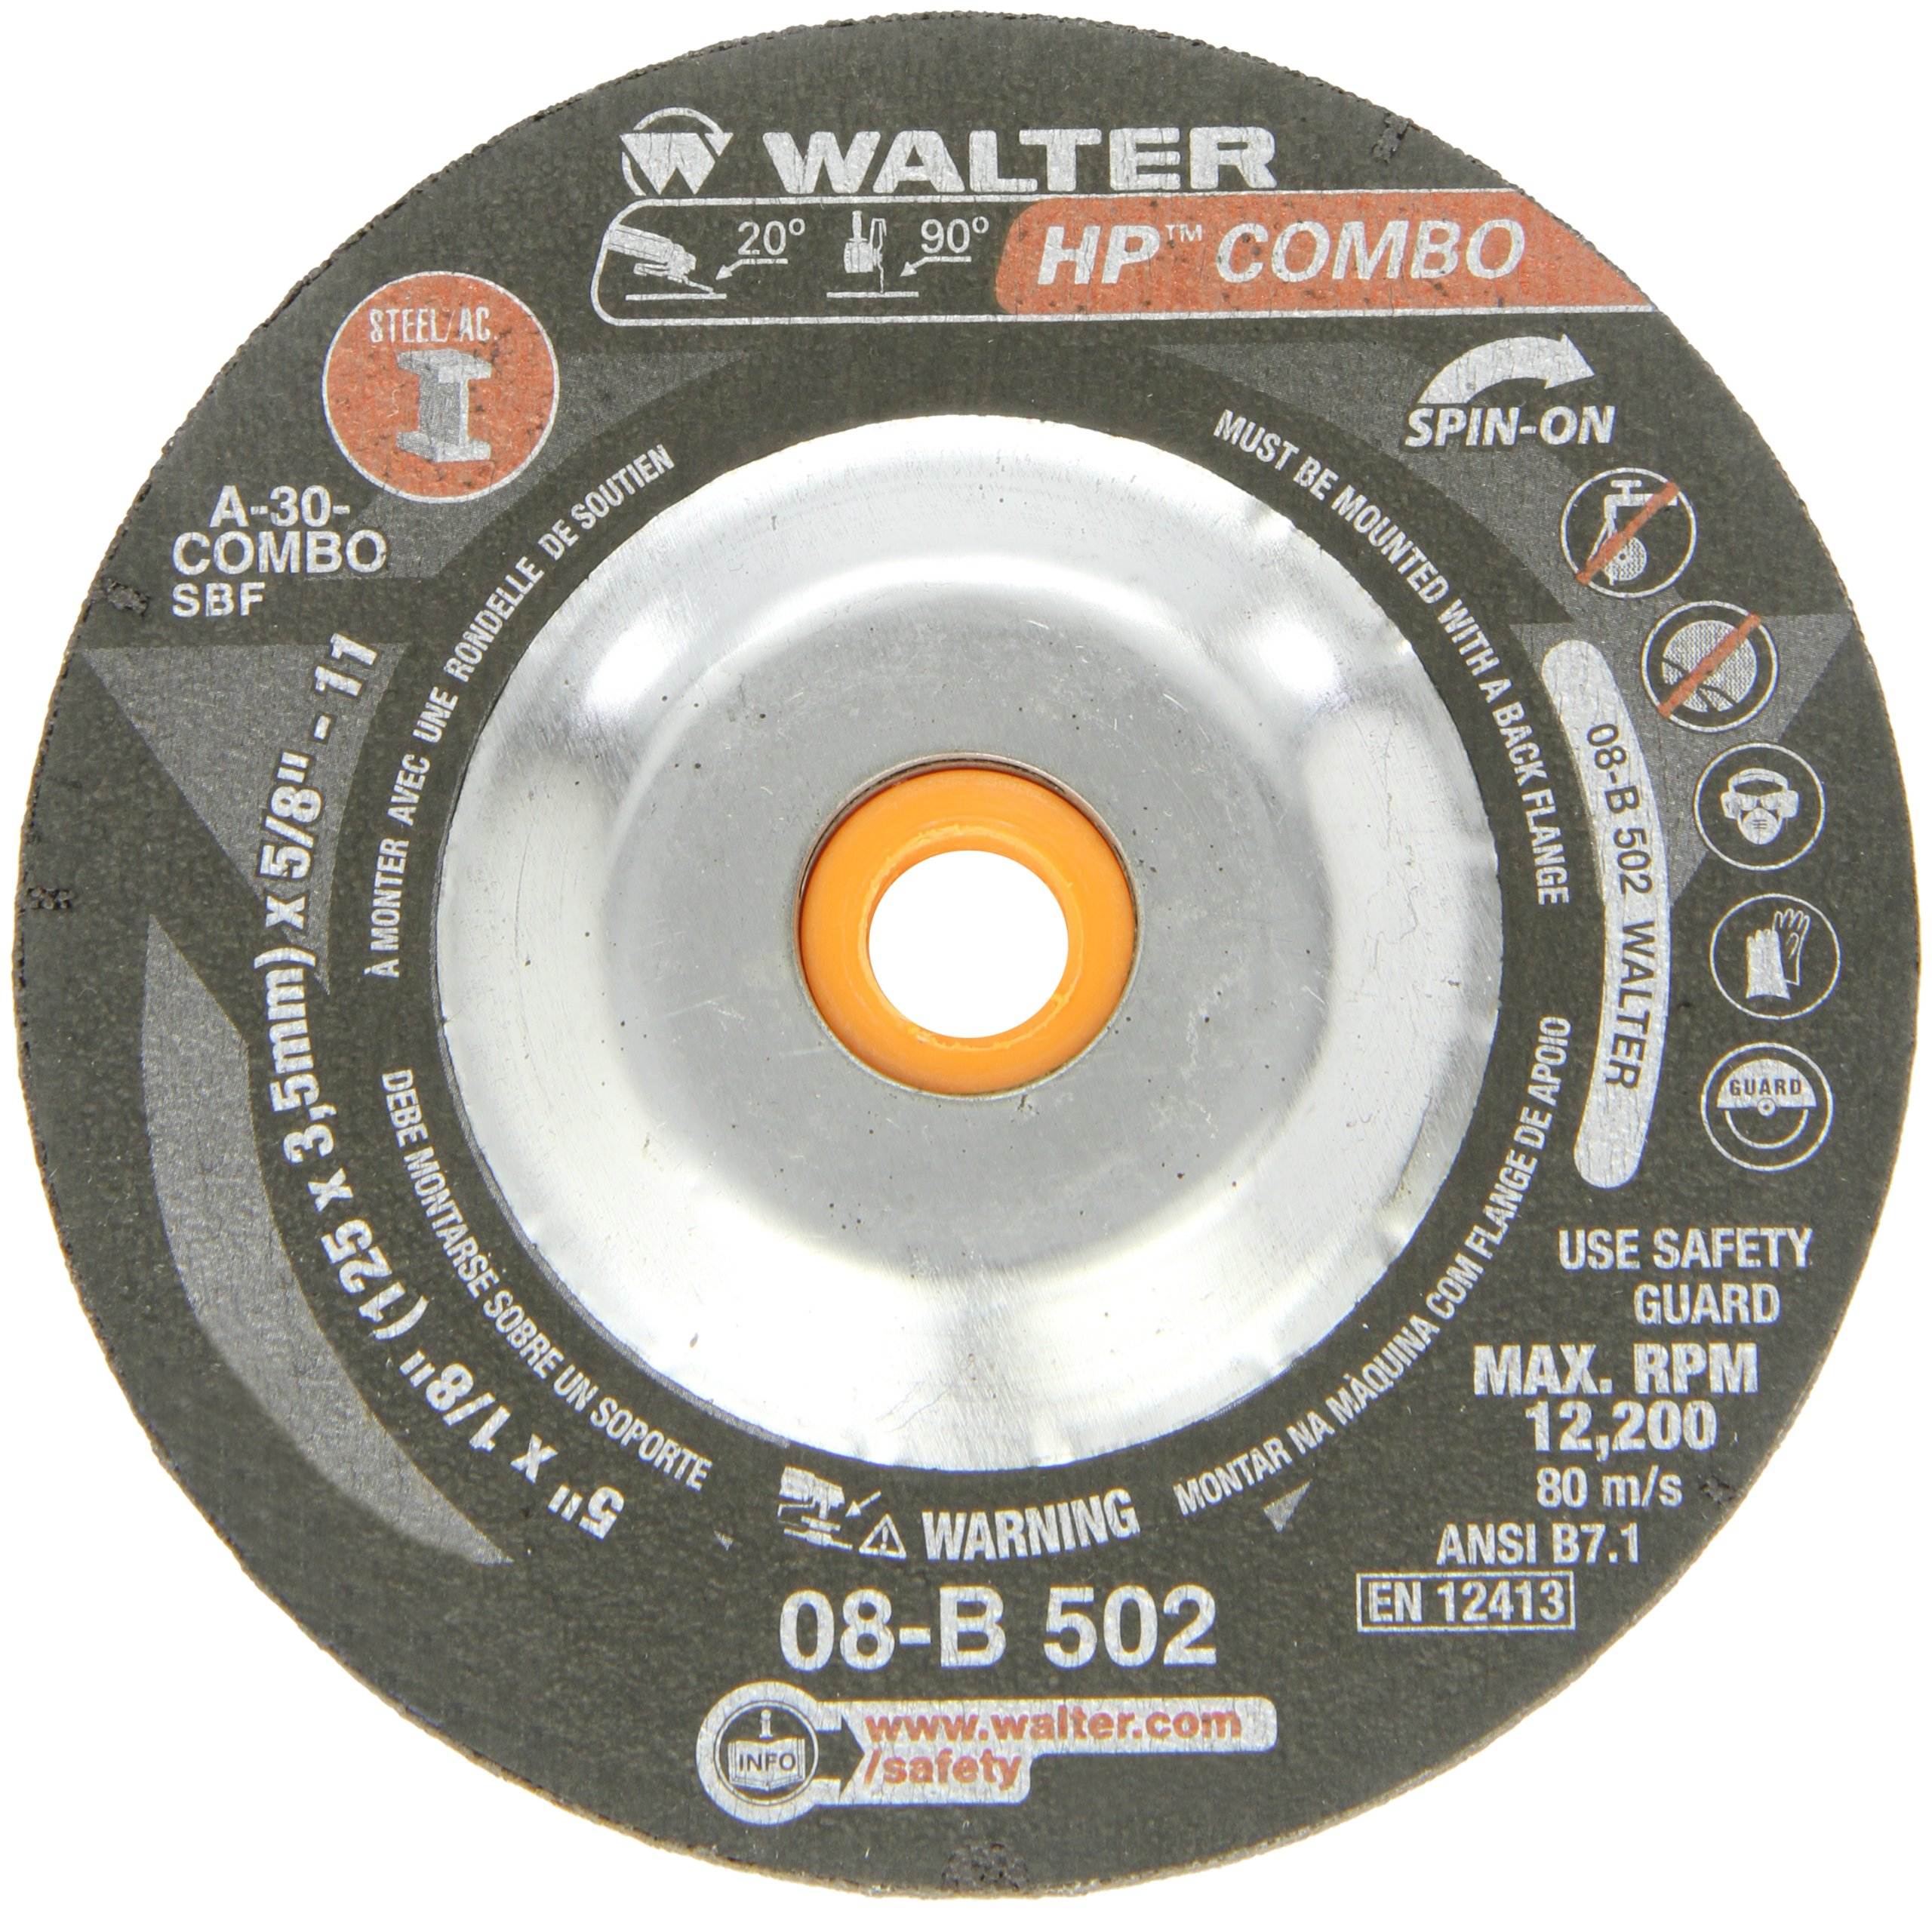 Walter HP Combo Grinding Wheel, Type 27, Threaded Hole, Aluminum Oxide, 5'' Diameter, 1/8'' Thick, 5/8''-11 Spin-On Arbor, Grit A-30-COMBO (Pack of 25) by Walter Surface Technologies